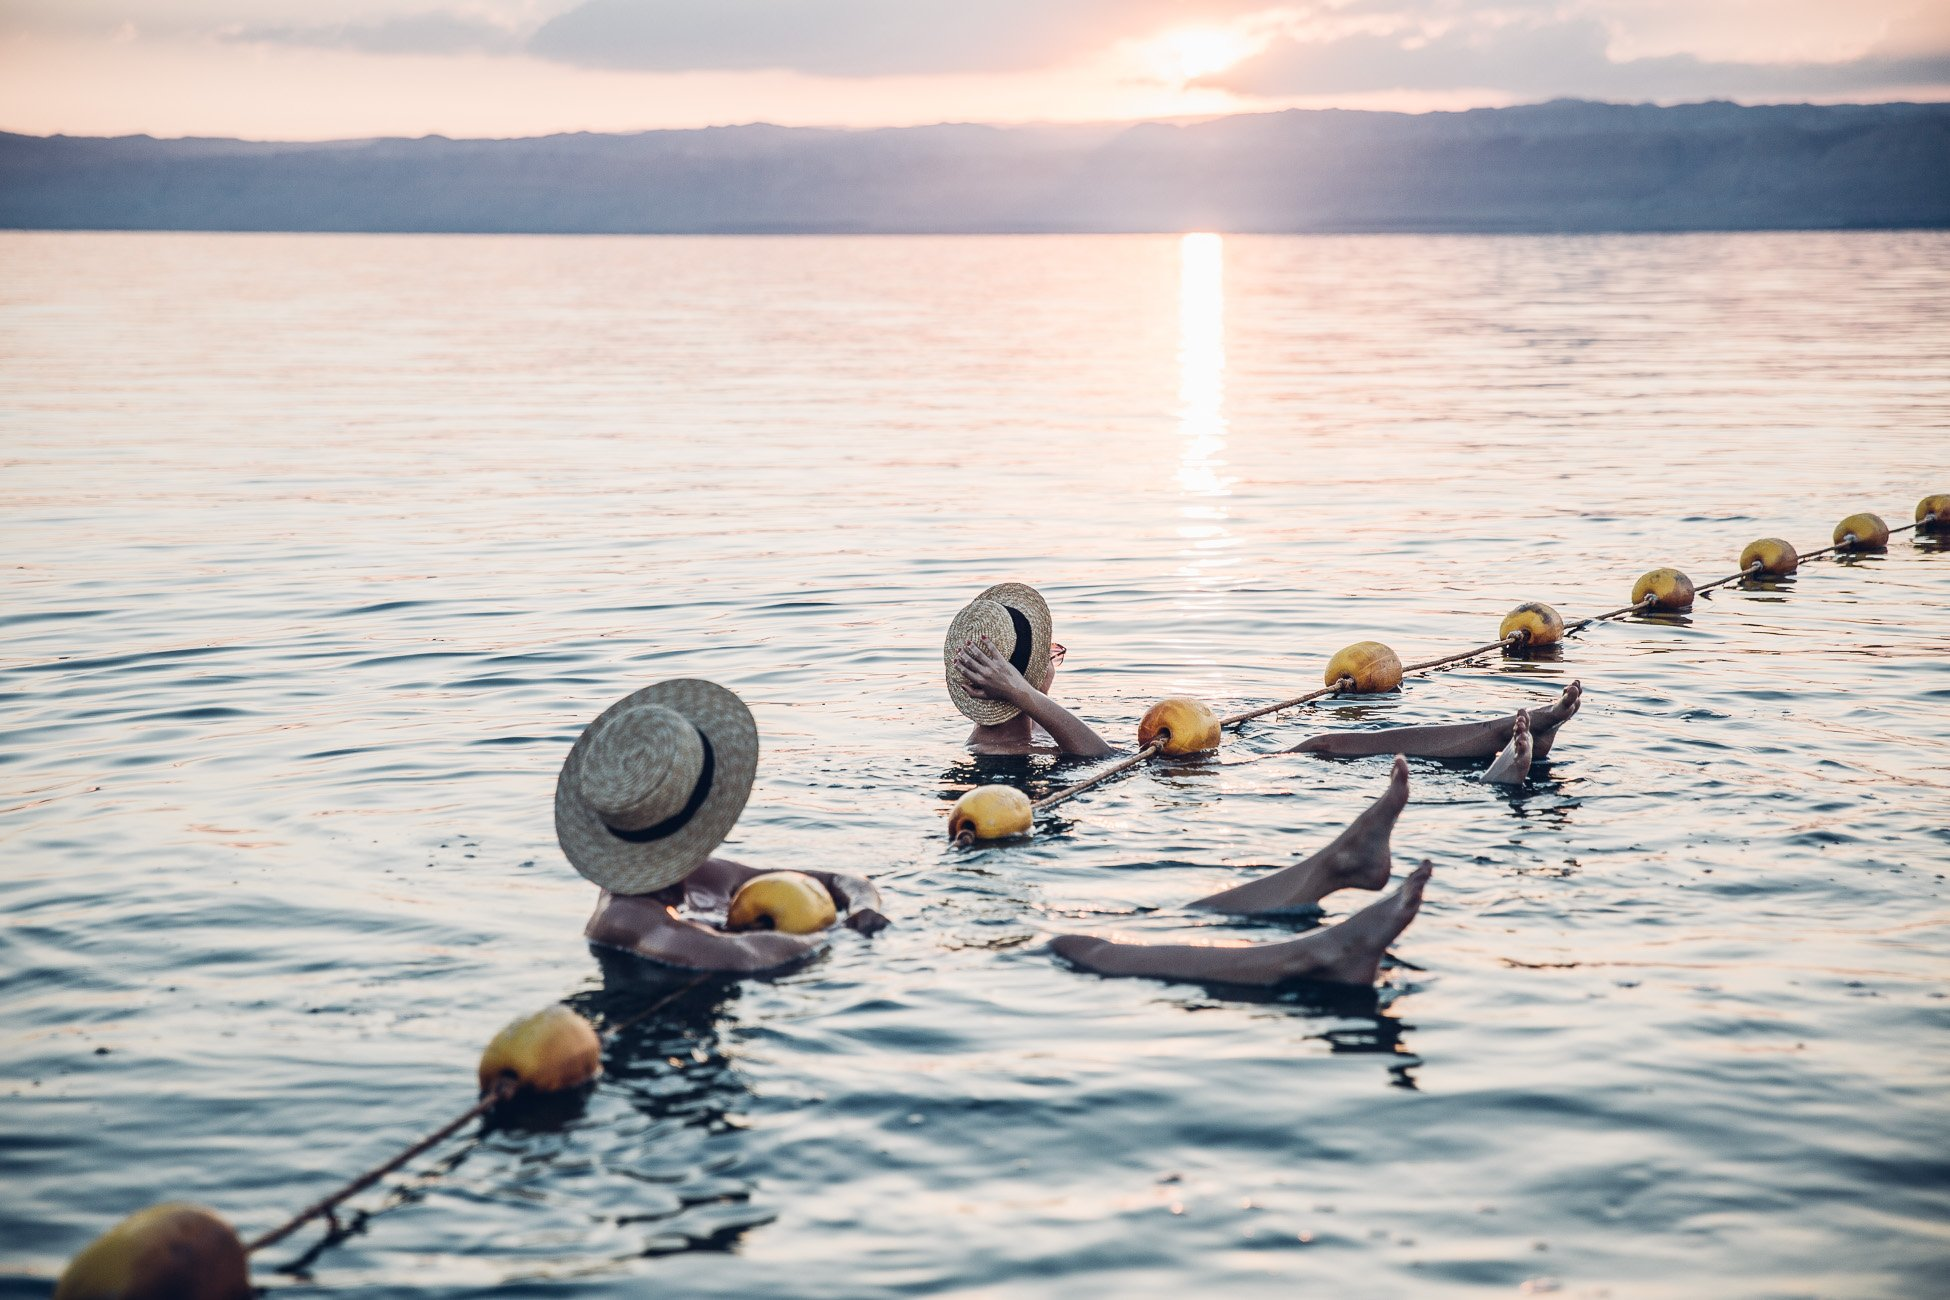 Floating in the Dead Sea at Sunset in Jordan